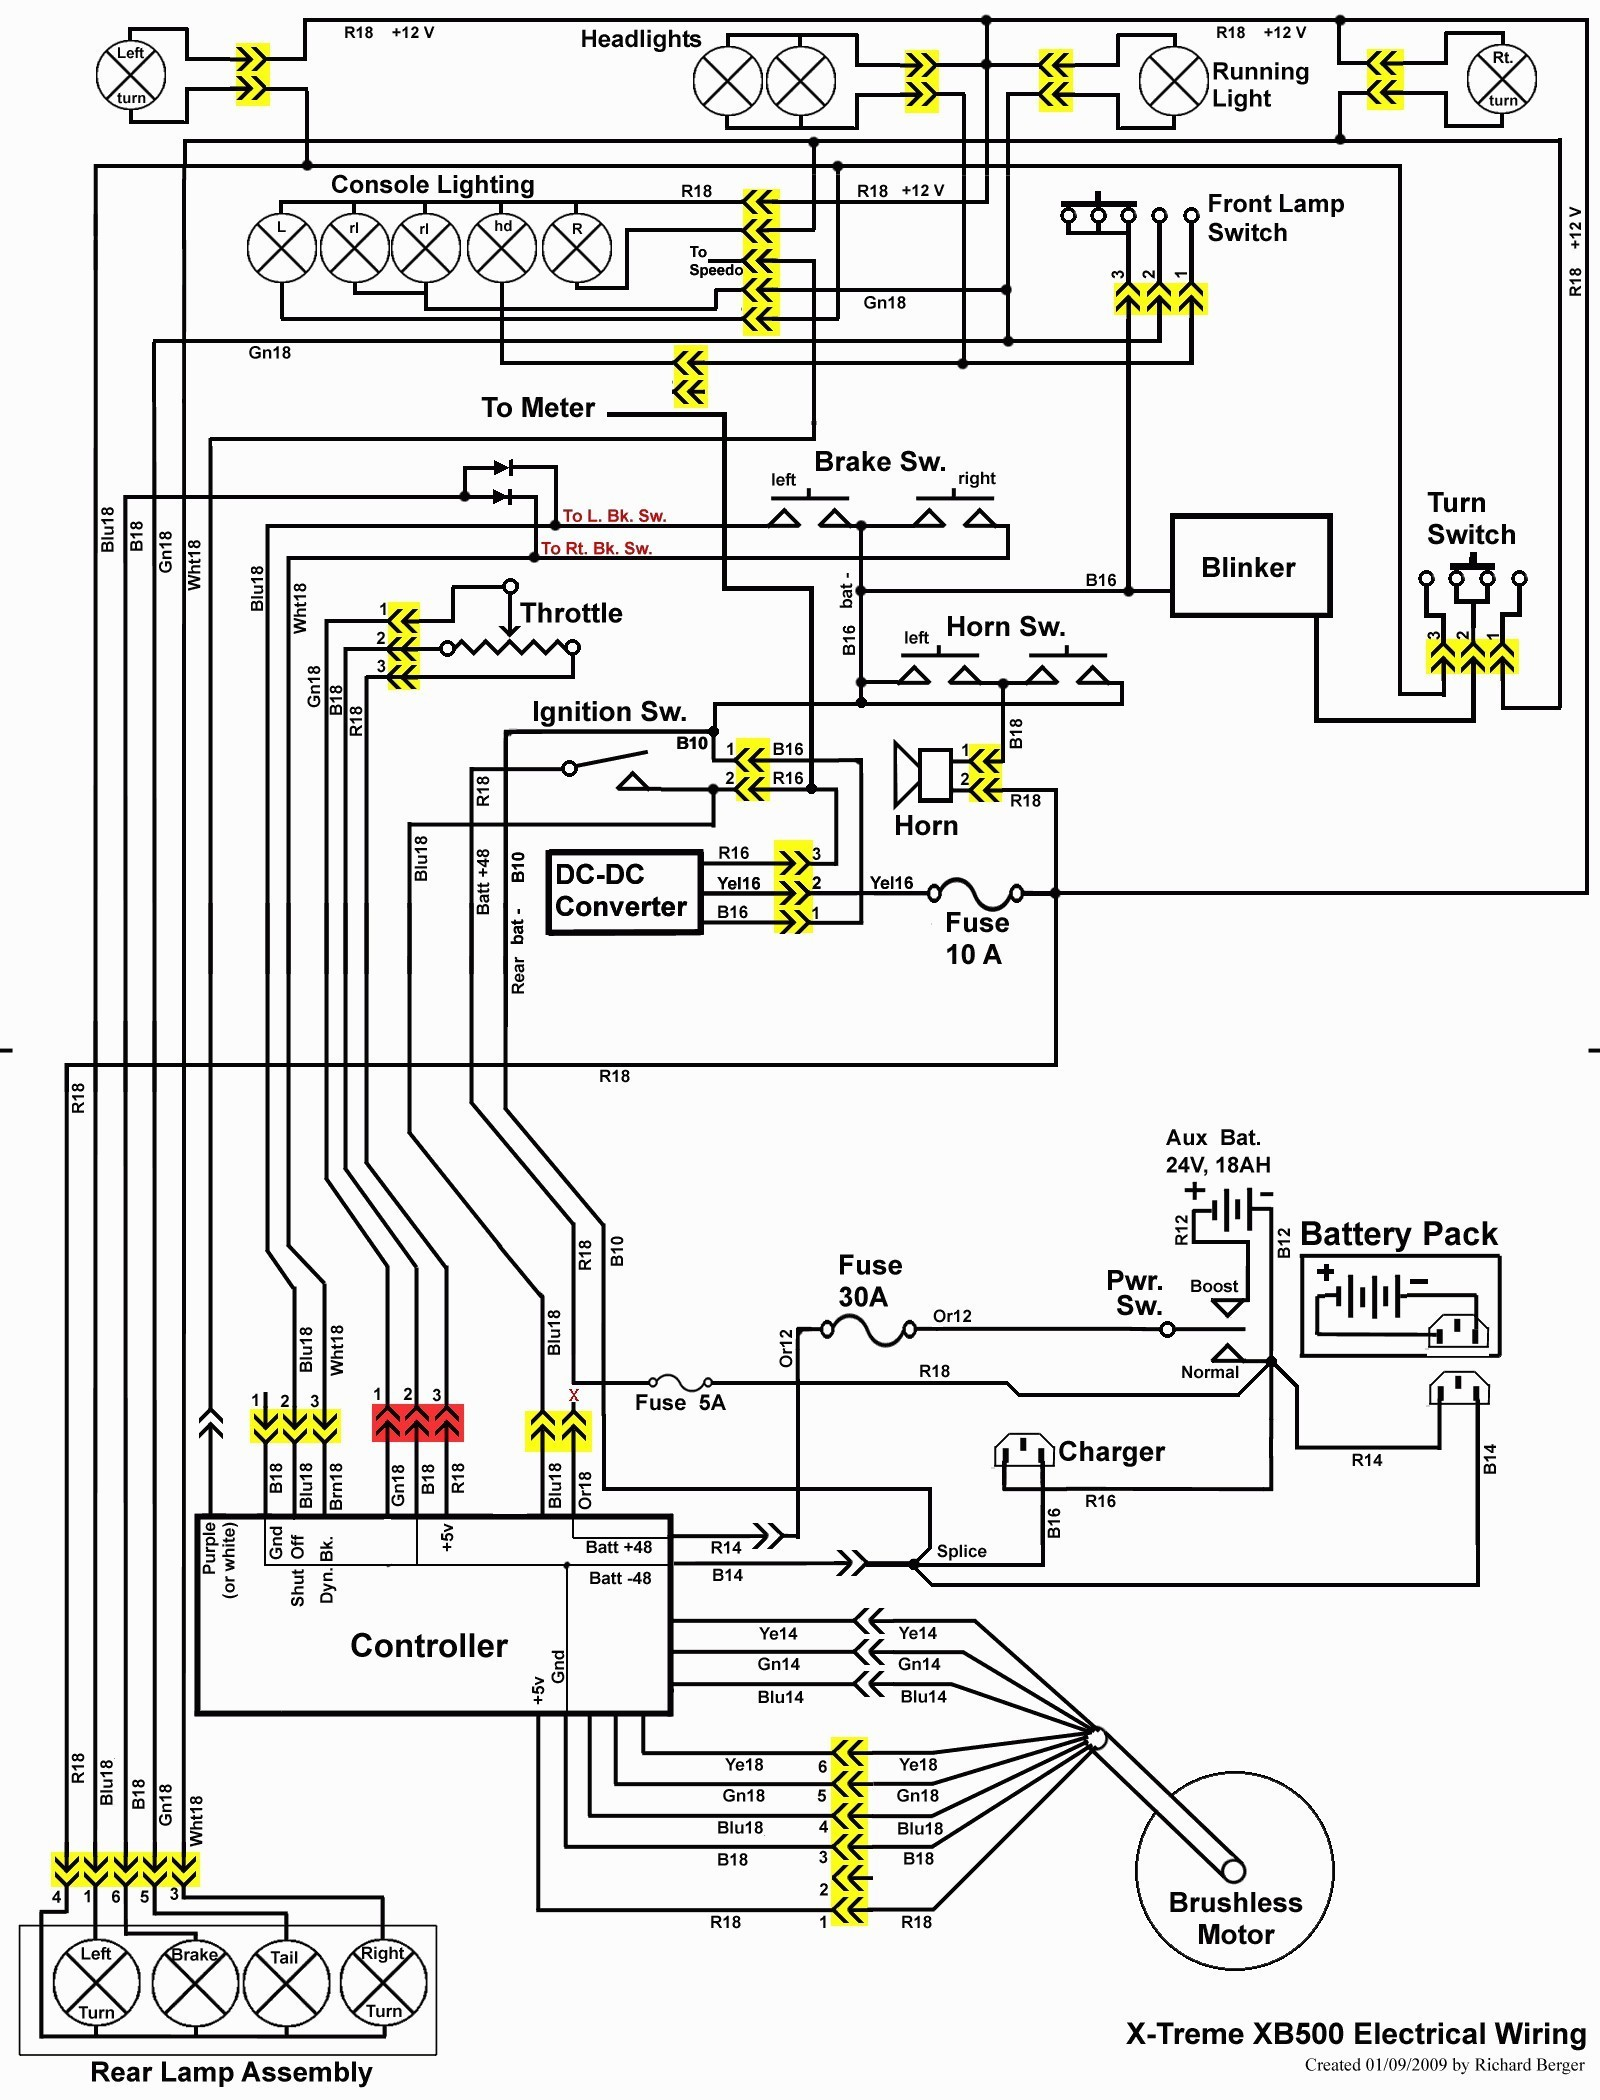 2001 nissan maxima fuel pump relay location